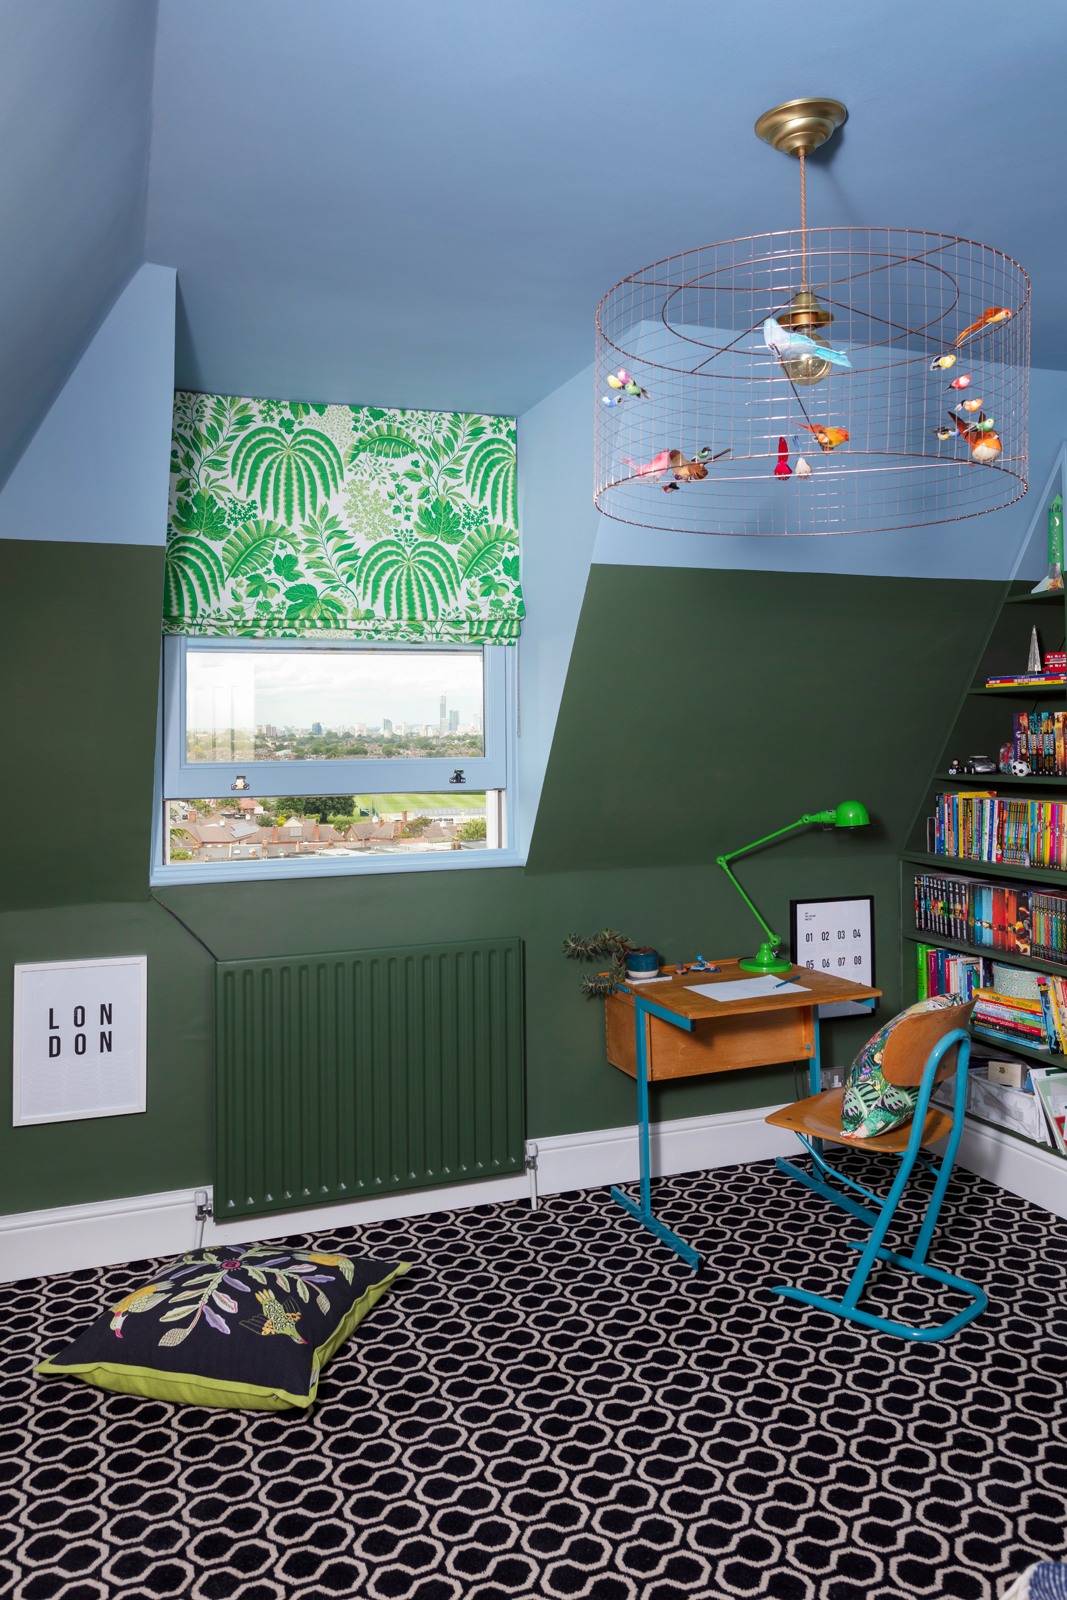 Alternative Florring Quirky B Honeycomb carpet in a child's room